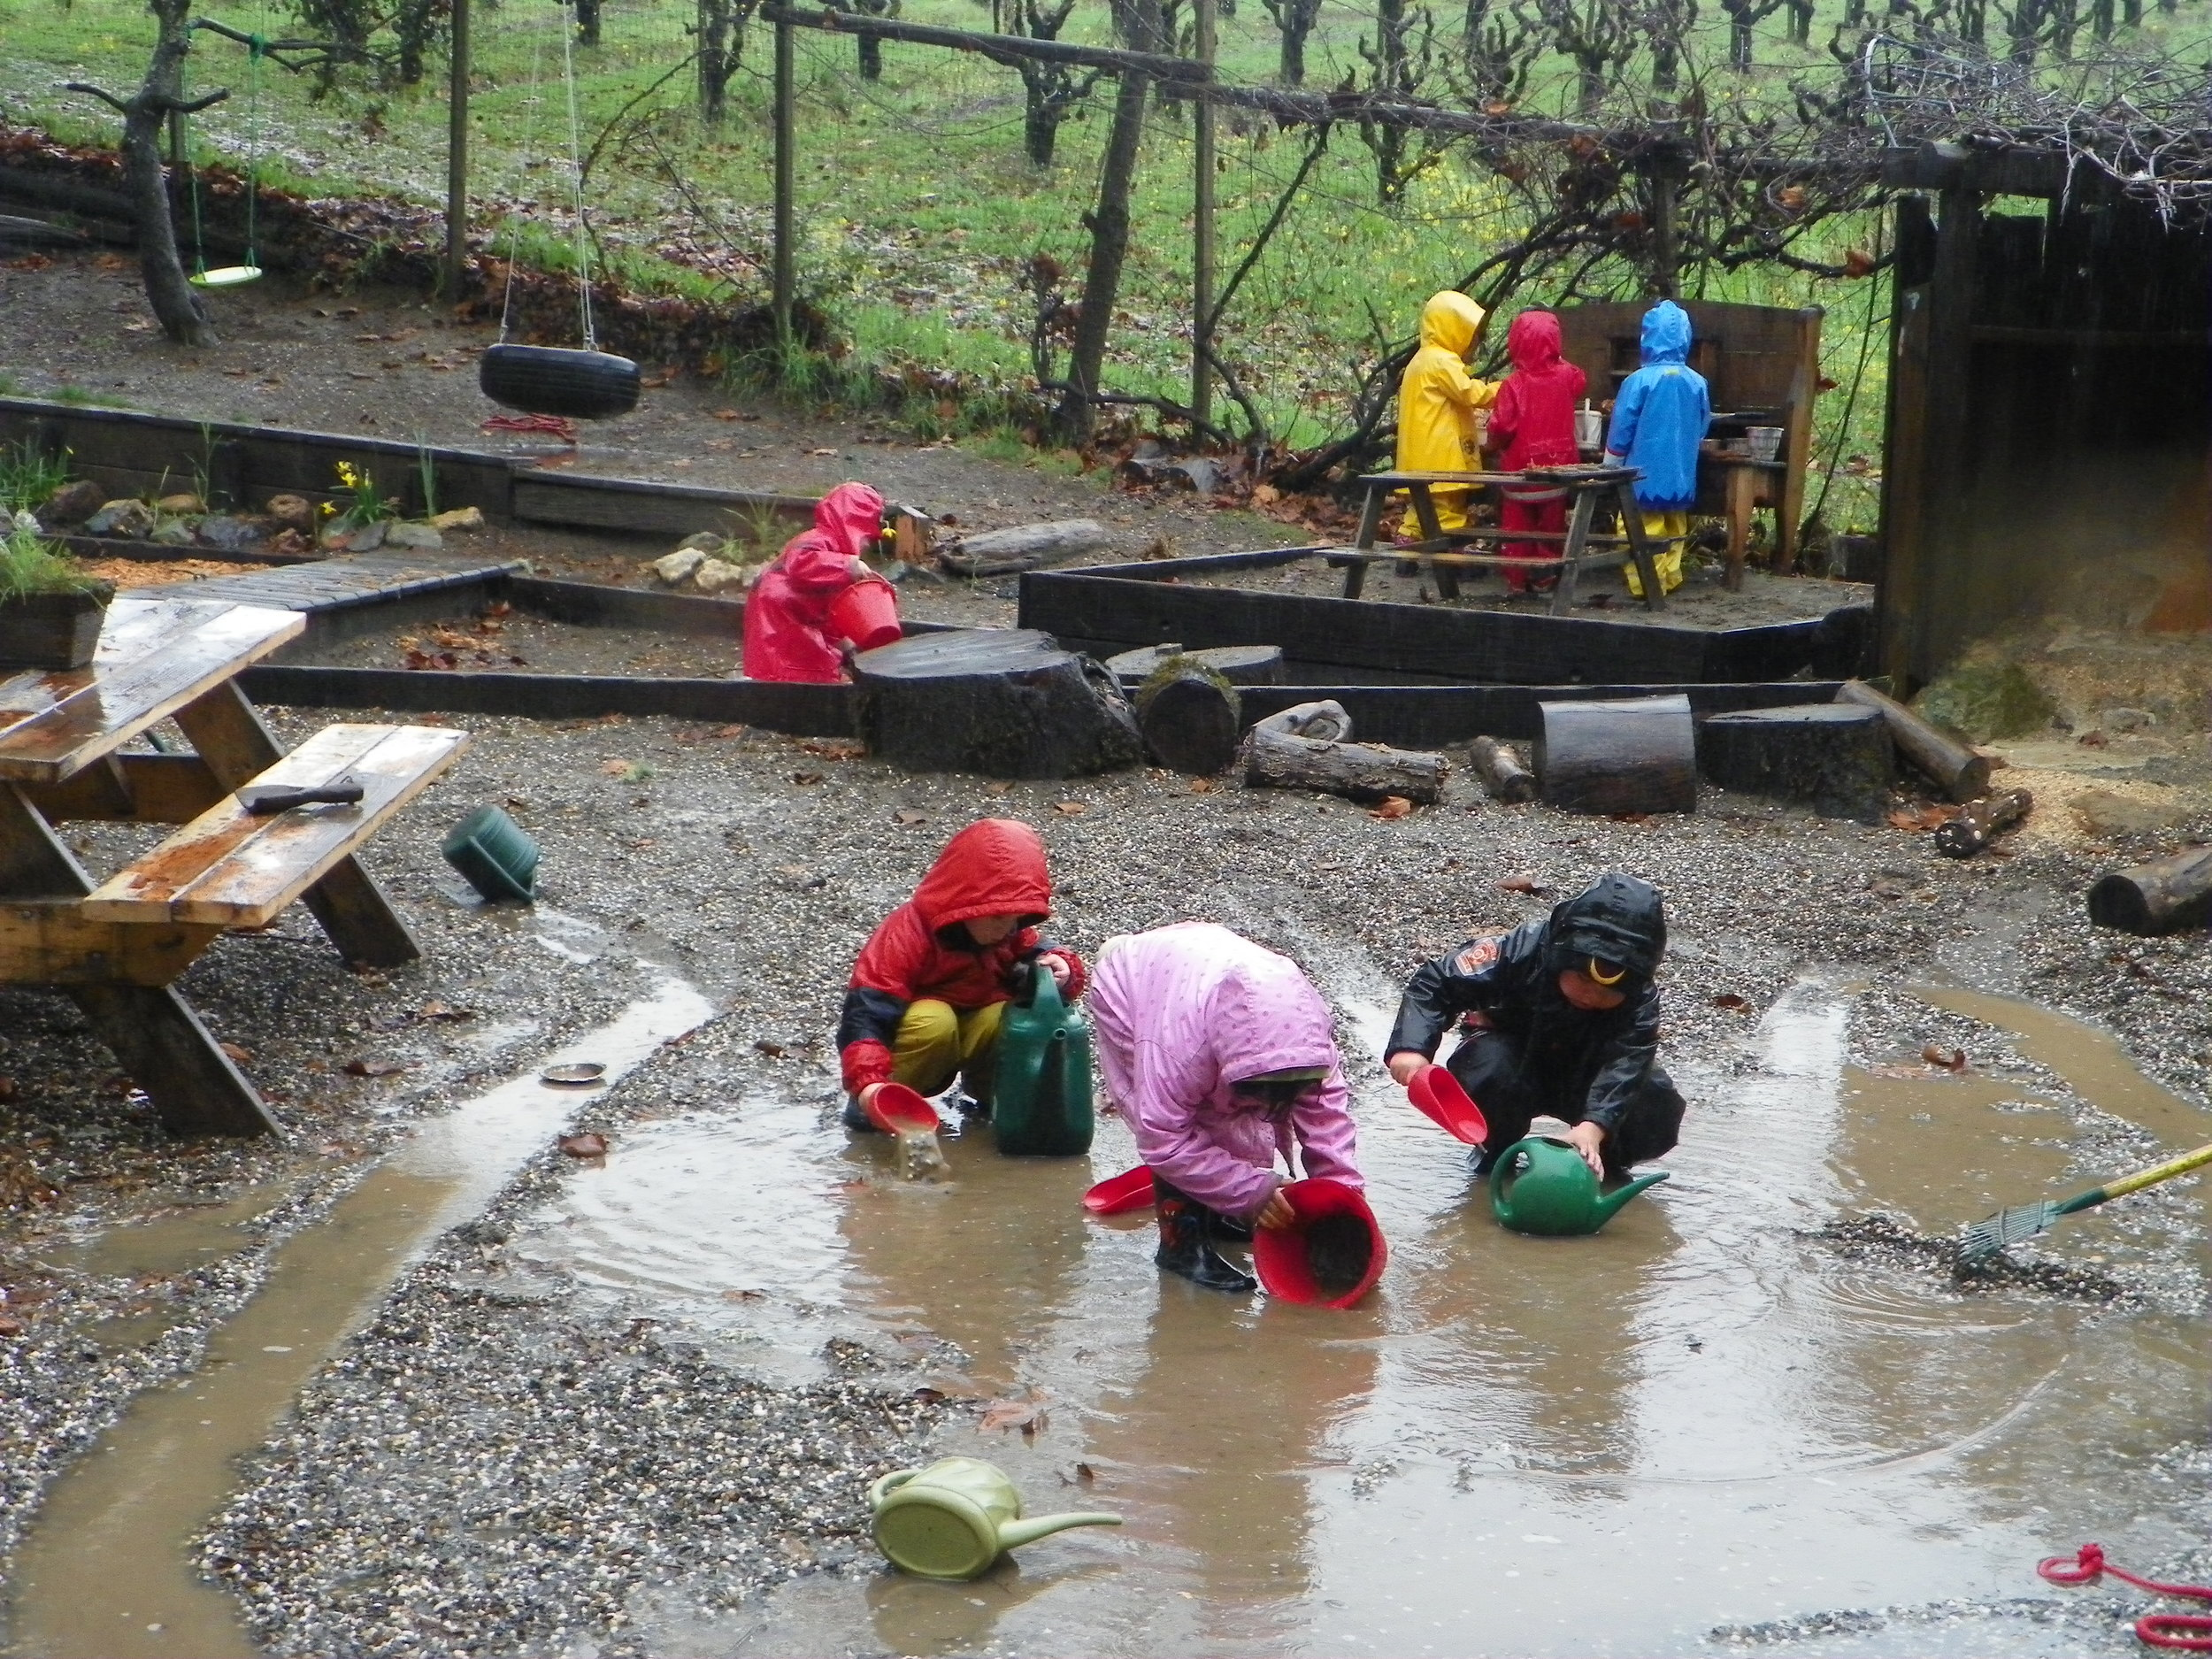 Child play outdoors year round, rain or shine.